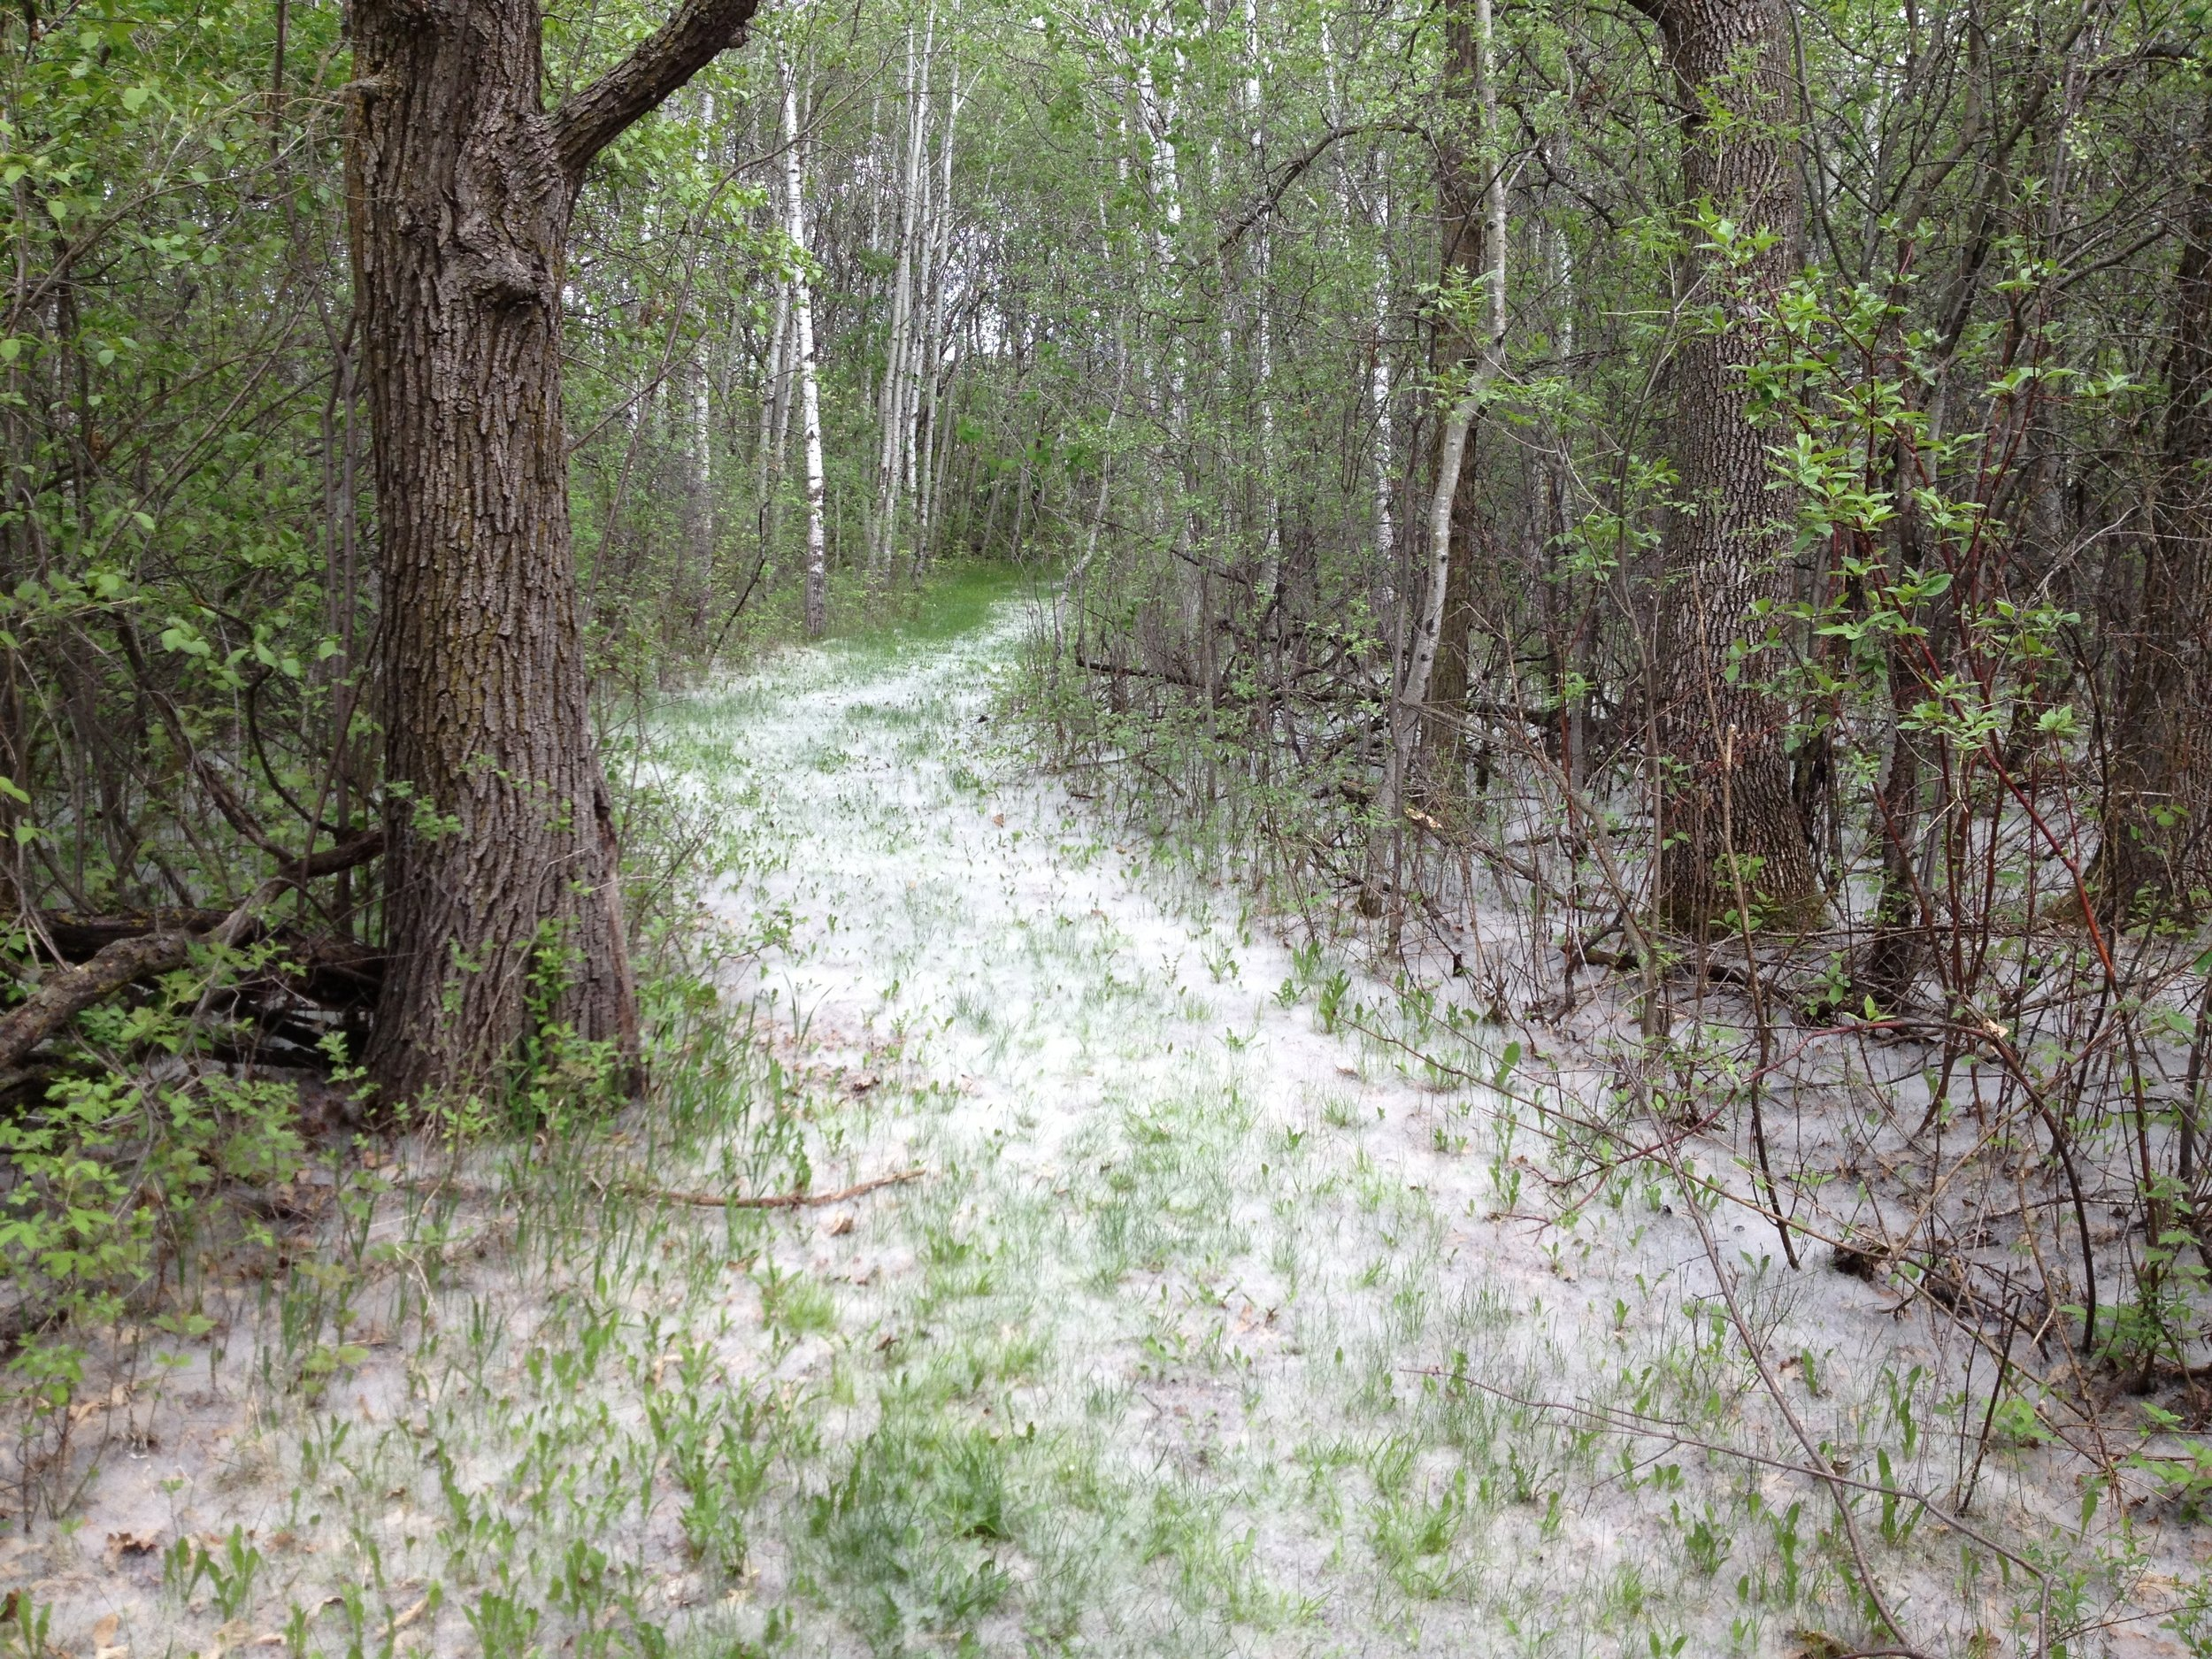 A path through the woods carpeted with poplar seeds at St. Benedict's Monastery.  Credit: Nelle Oosterom